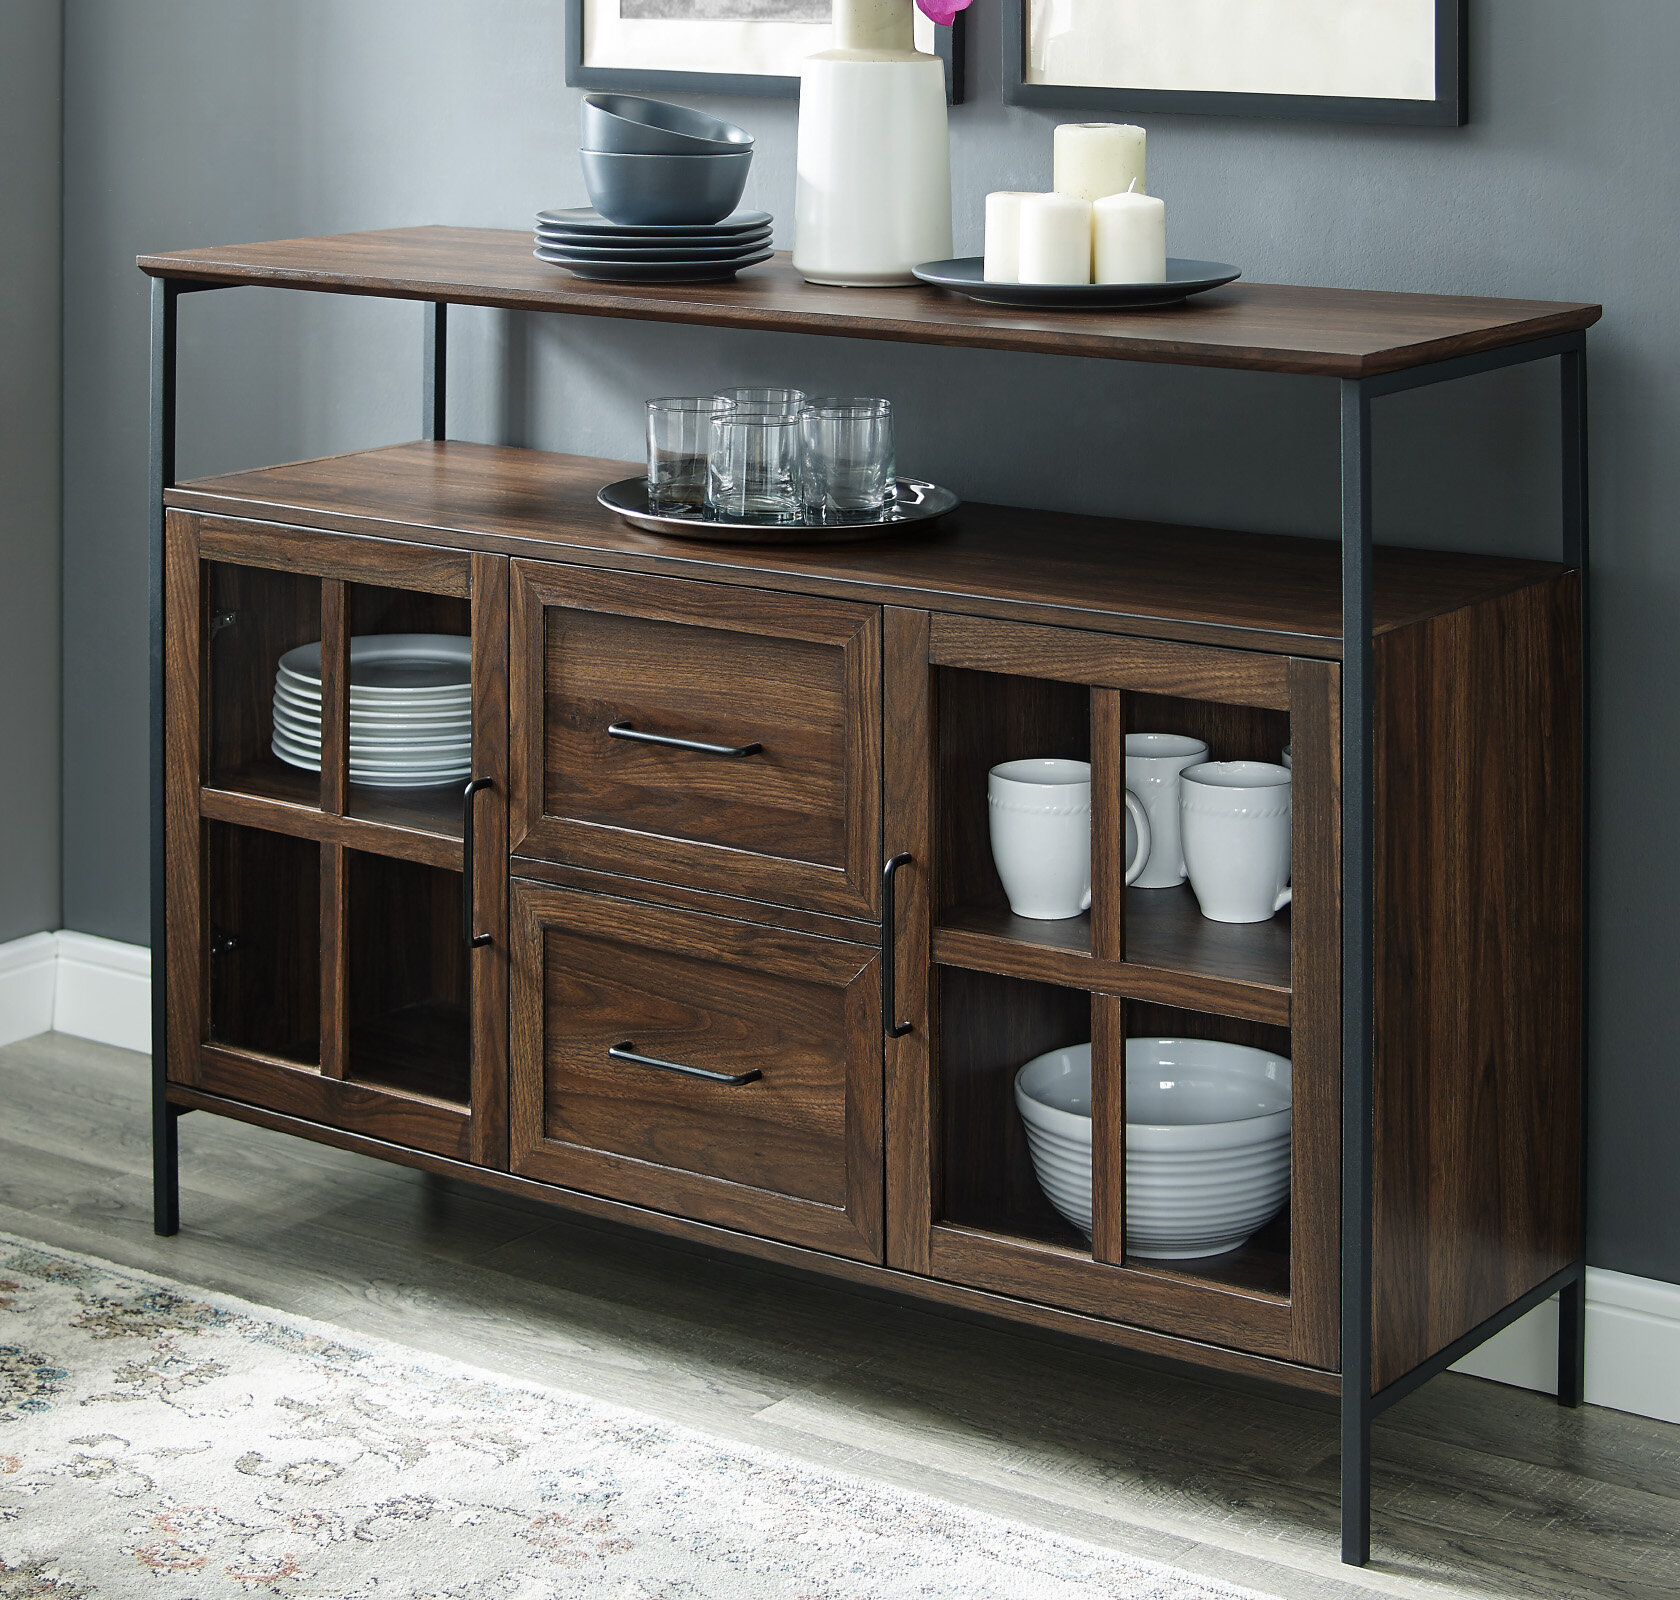 3 Drawer Credenza You'll Love In 2019   Wayfair Intended For Giulia 3 Drawer Credenzas (View 13 of 30)